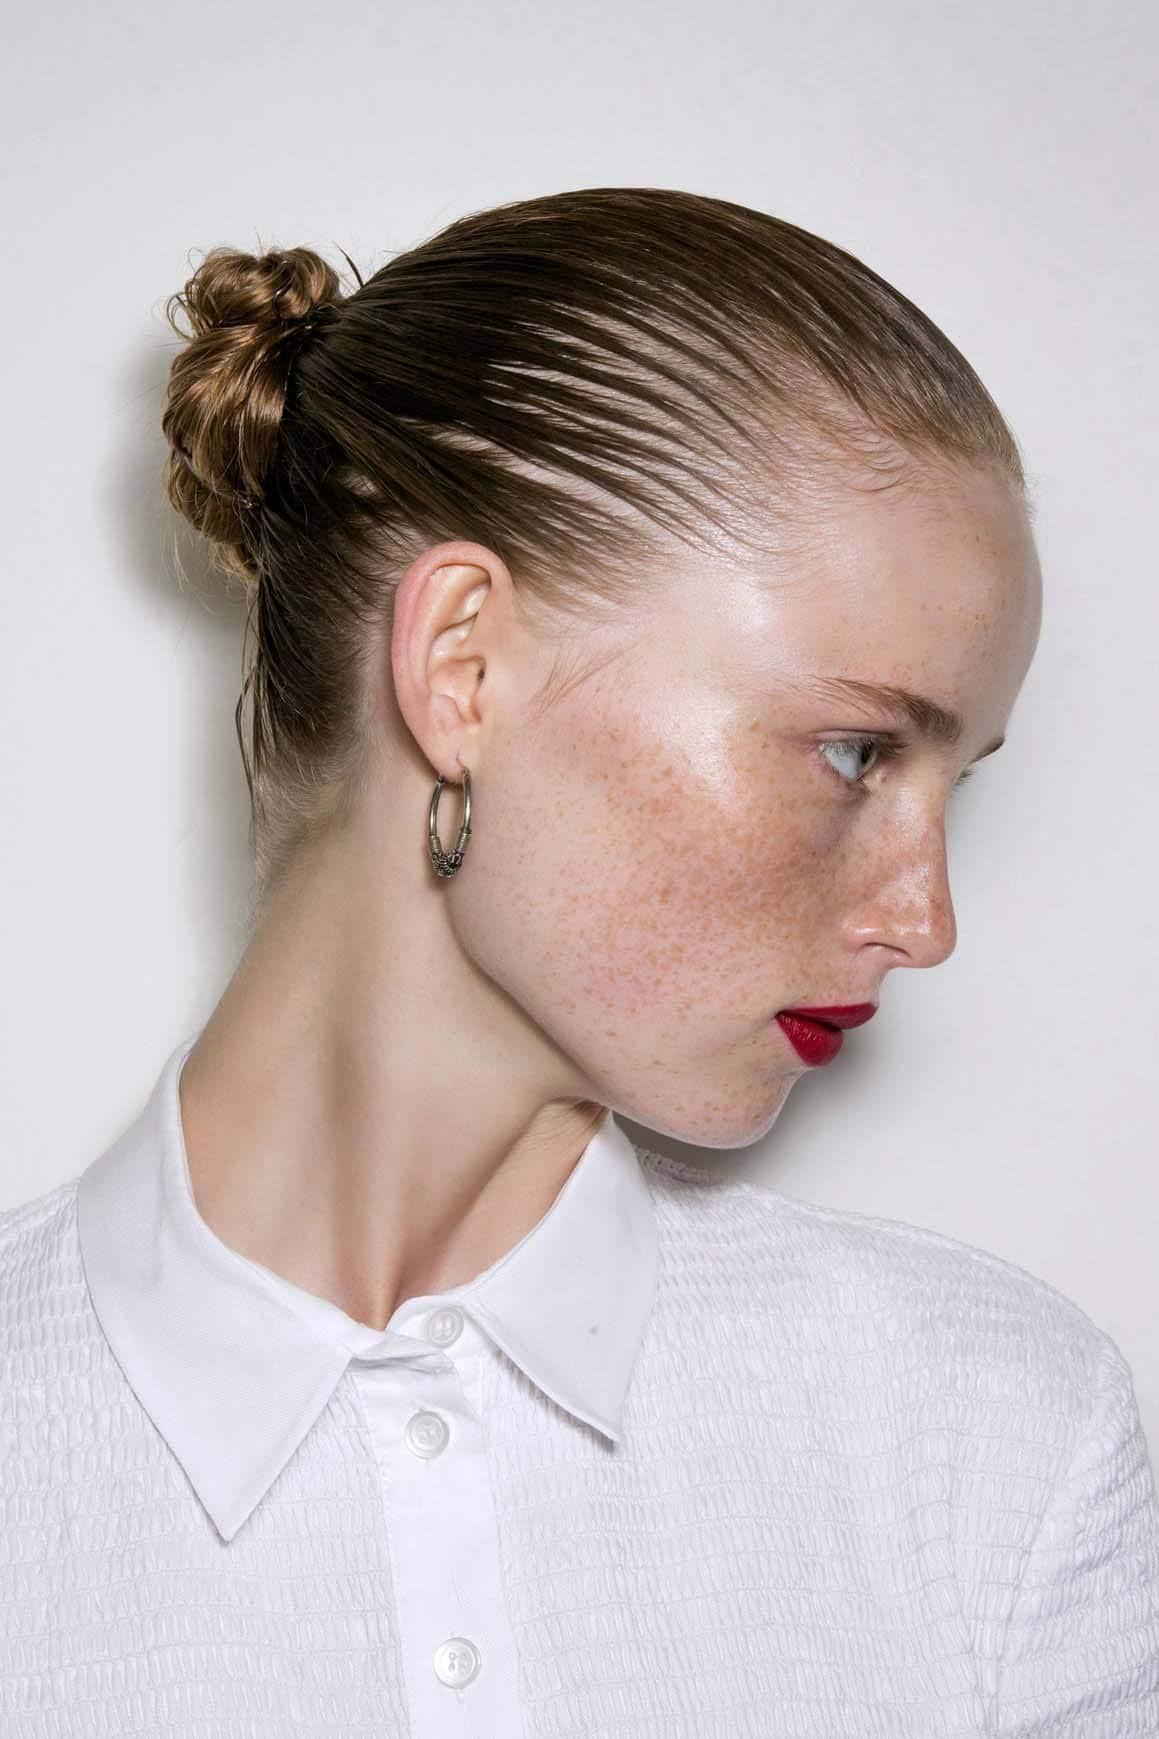 Easy updos - side view of a model with a wet look bun and red lipstick